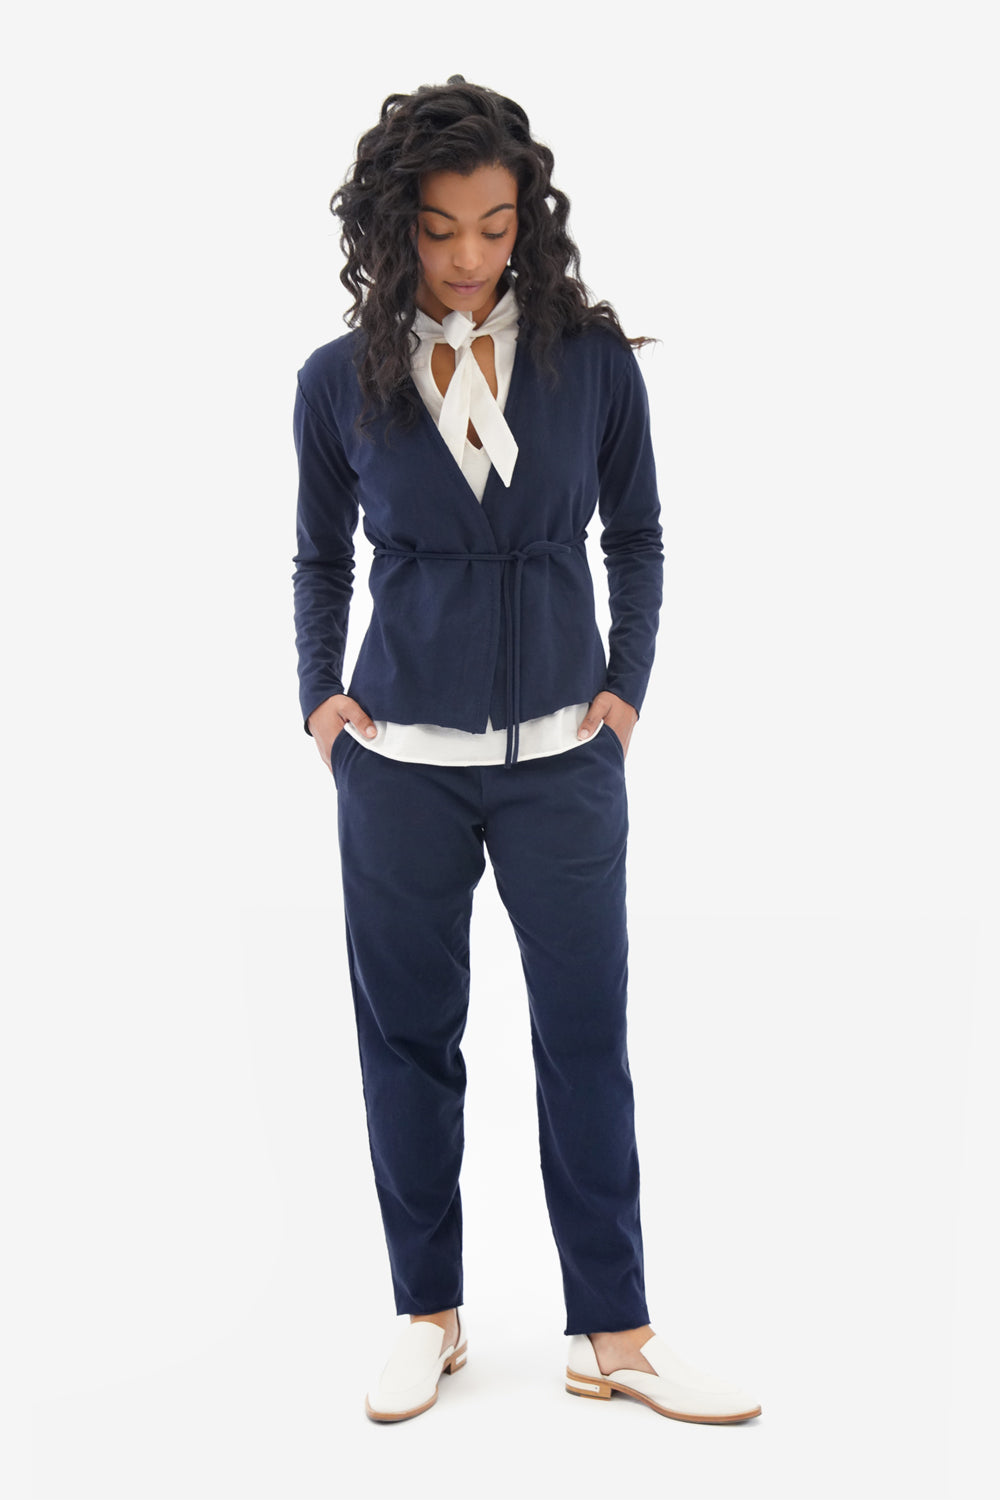 Alabama Chanin Jogger Women's Pant on Model in Navy with Wrap Top in 100% Organic Cotton